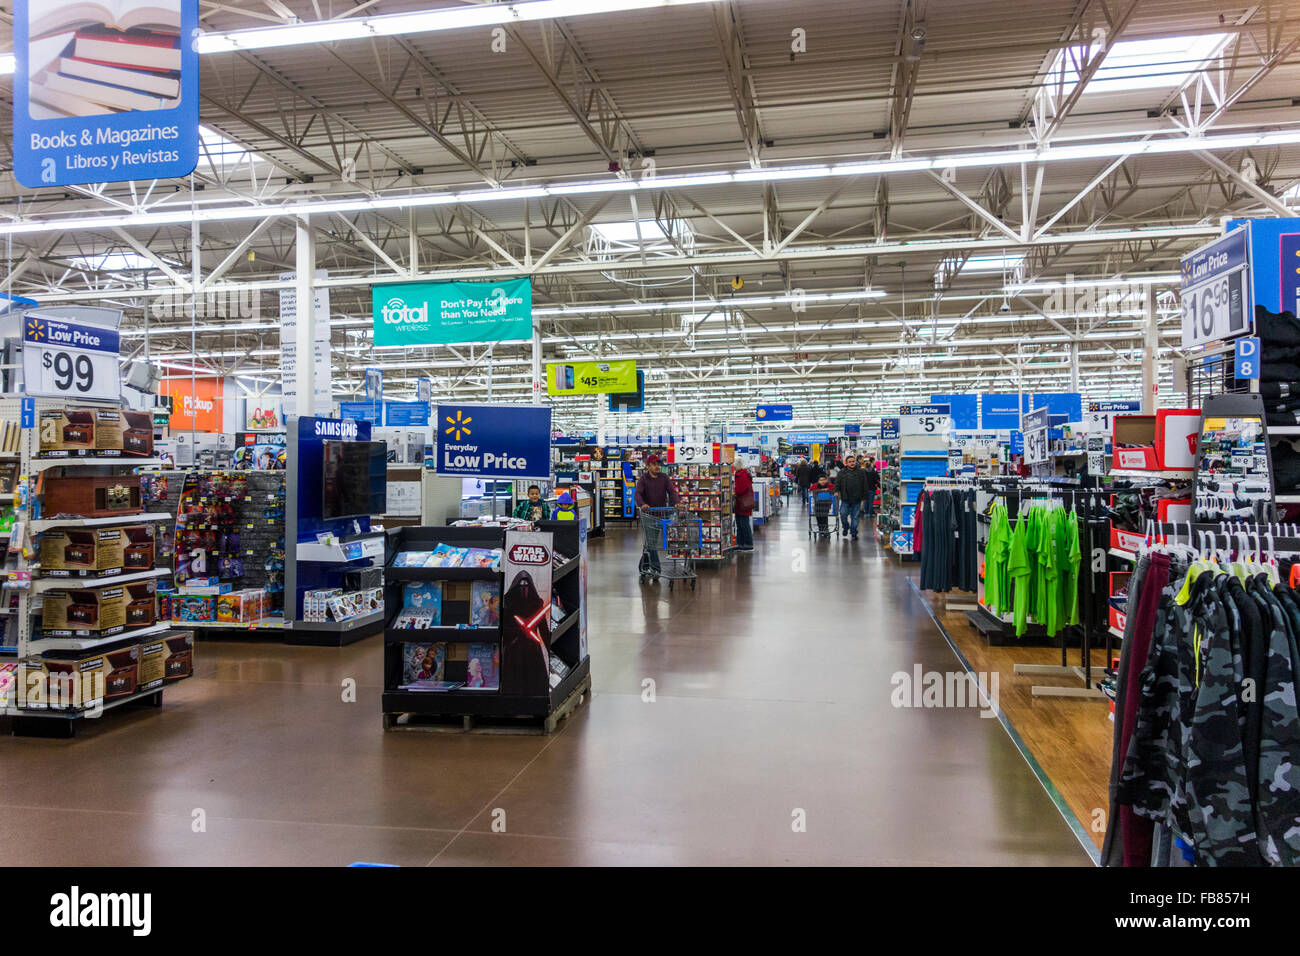 And don't forget: Walmart Grocery is about way more than just food. Stock up on all your everyday essentials like laundry detergent, diapers, pet supplies, wipes and paper towels. You'll get everything you need in one easy stop, and save even more time. With free .